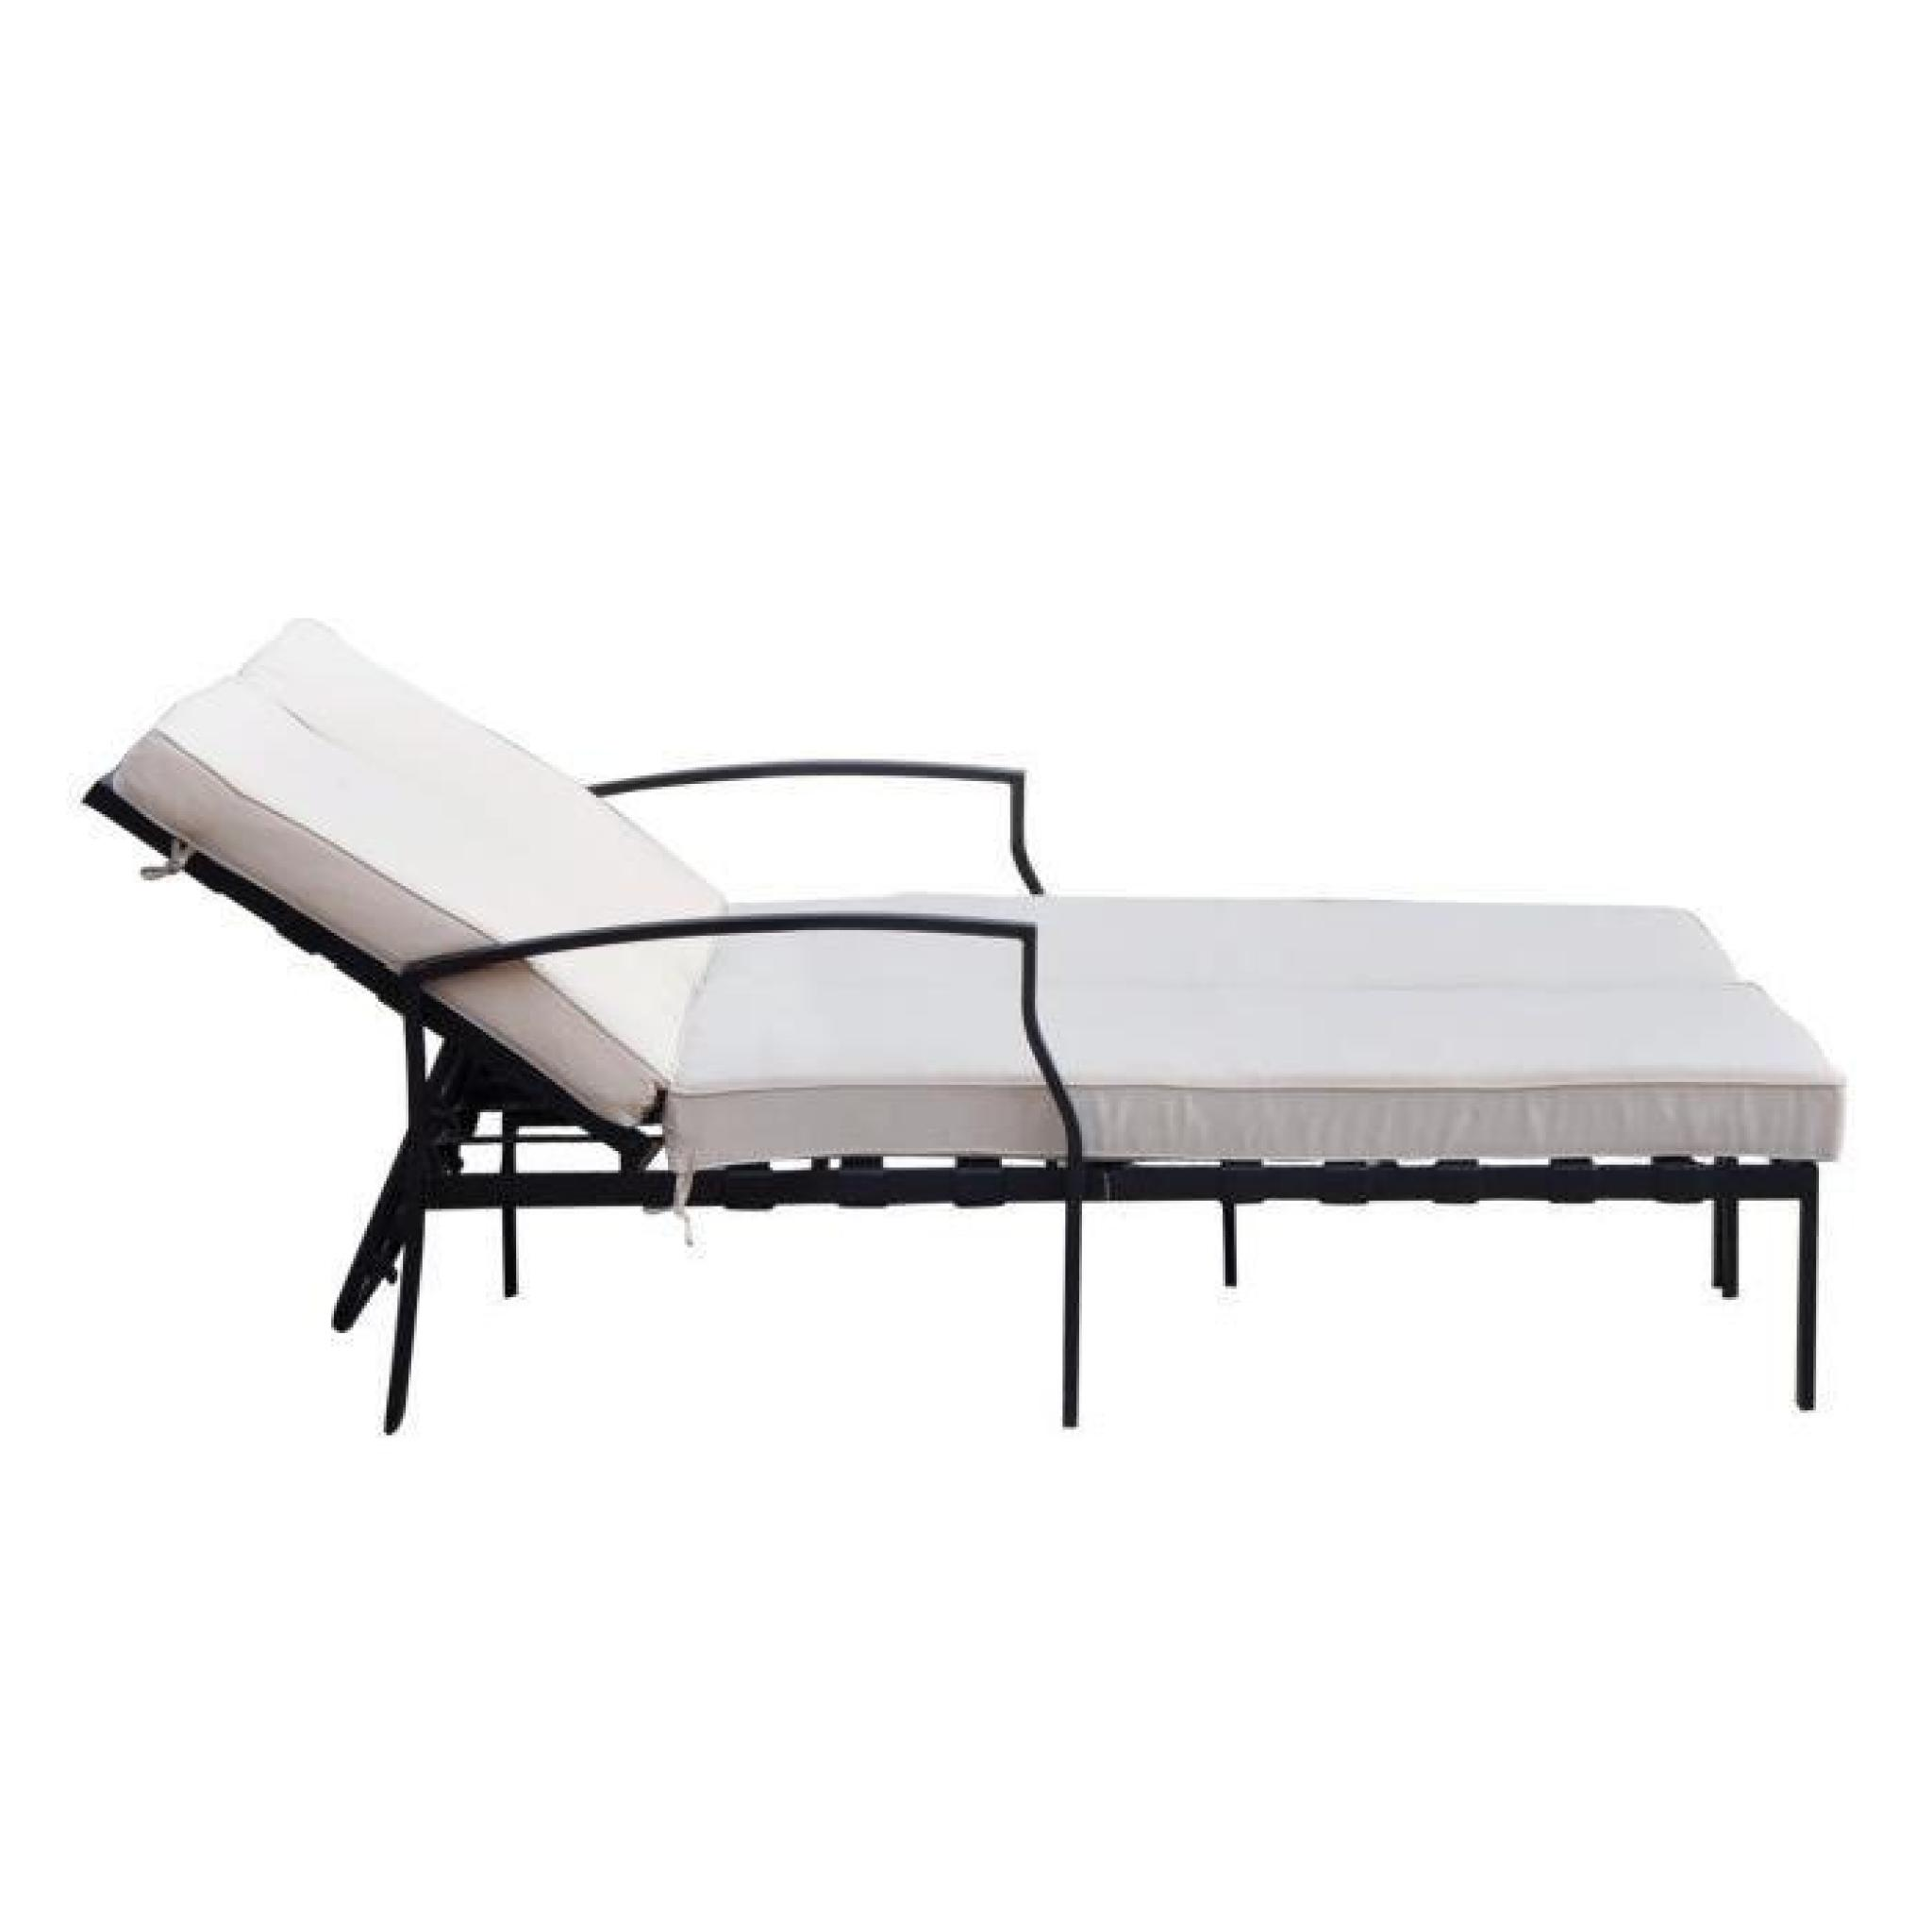 lit bain de soleil awesome lidl promotion chaise longue flora best lit bain de soleil with lit. Black Bedroom Furniture Sets. Home Design Ideas